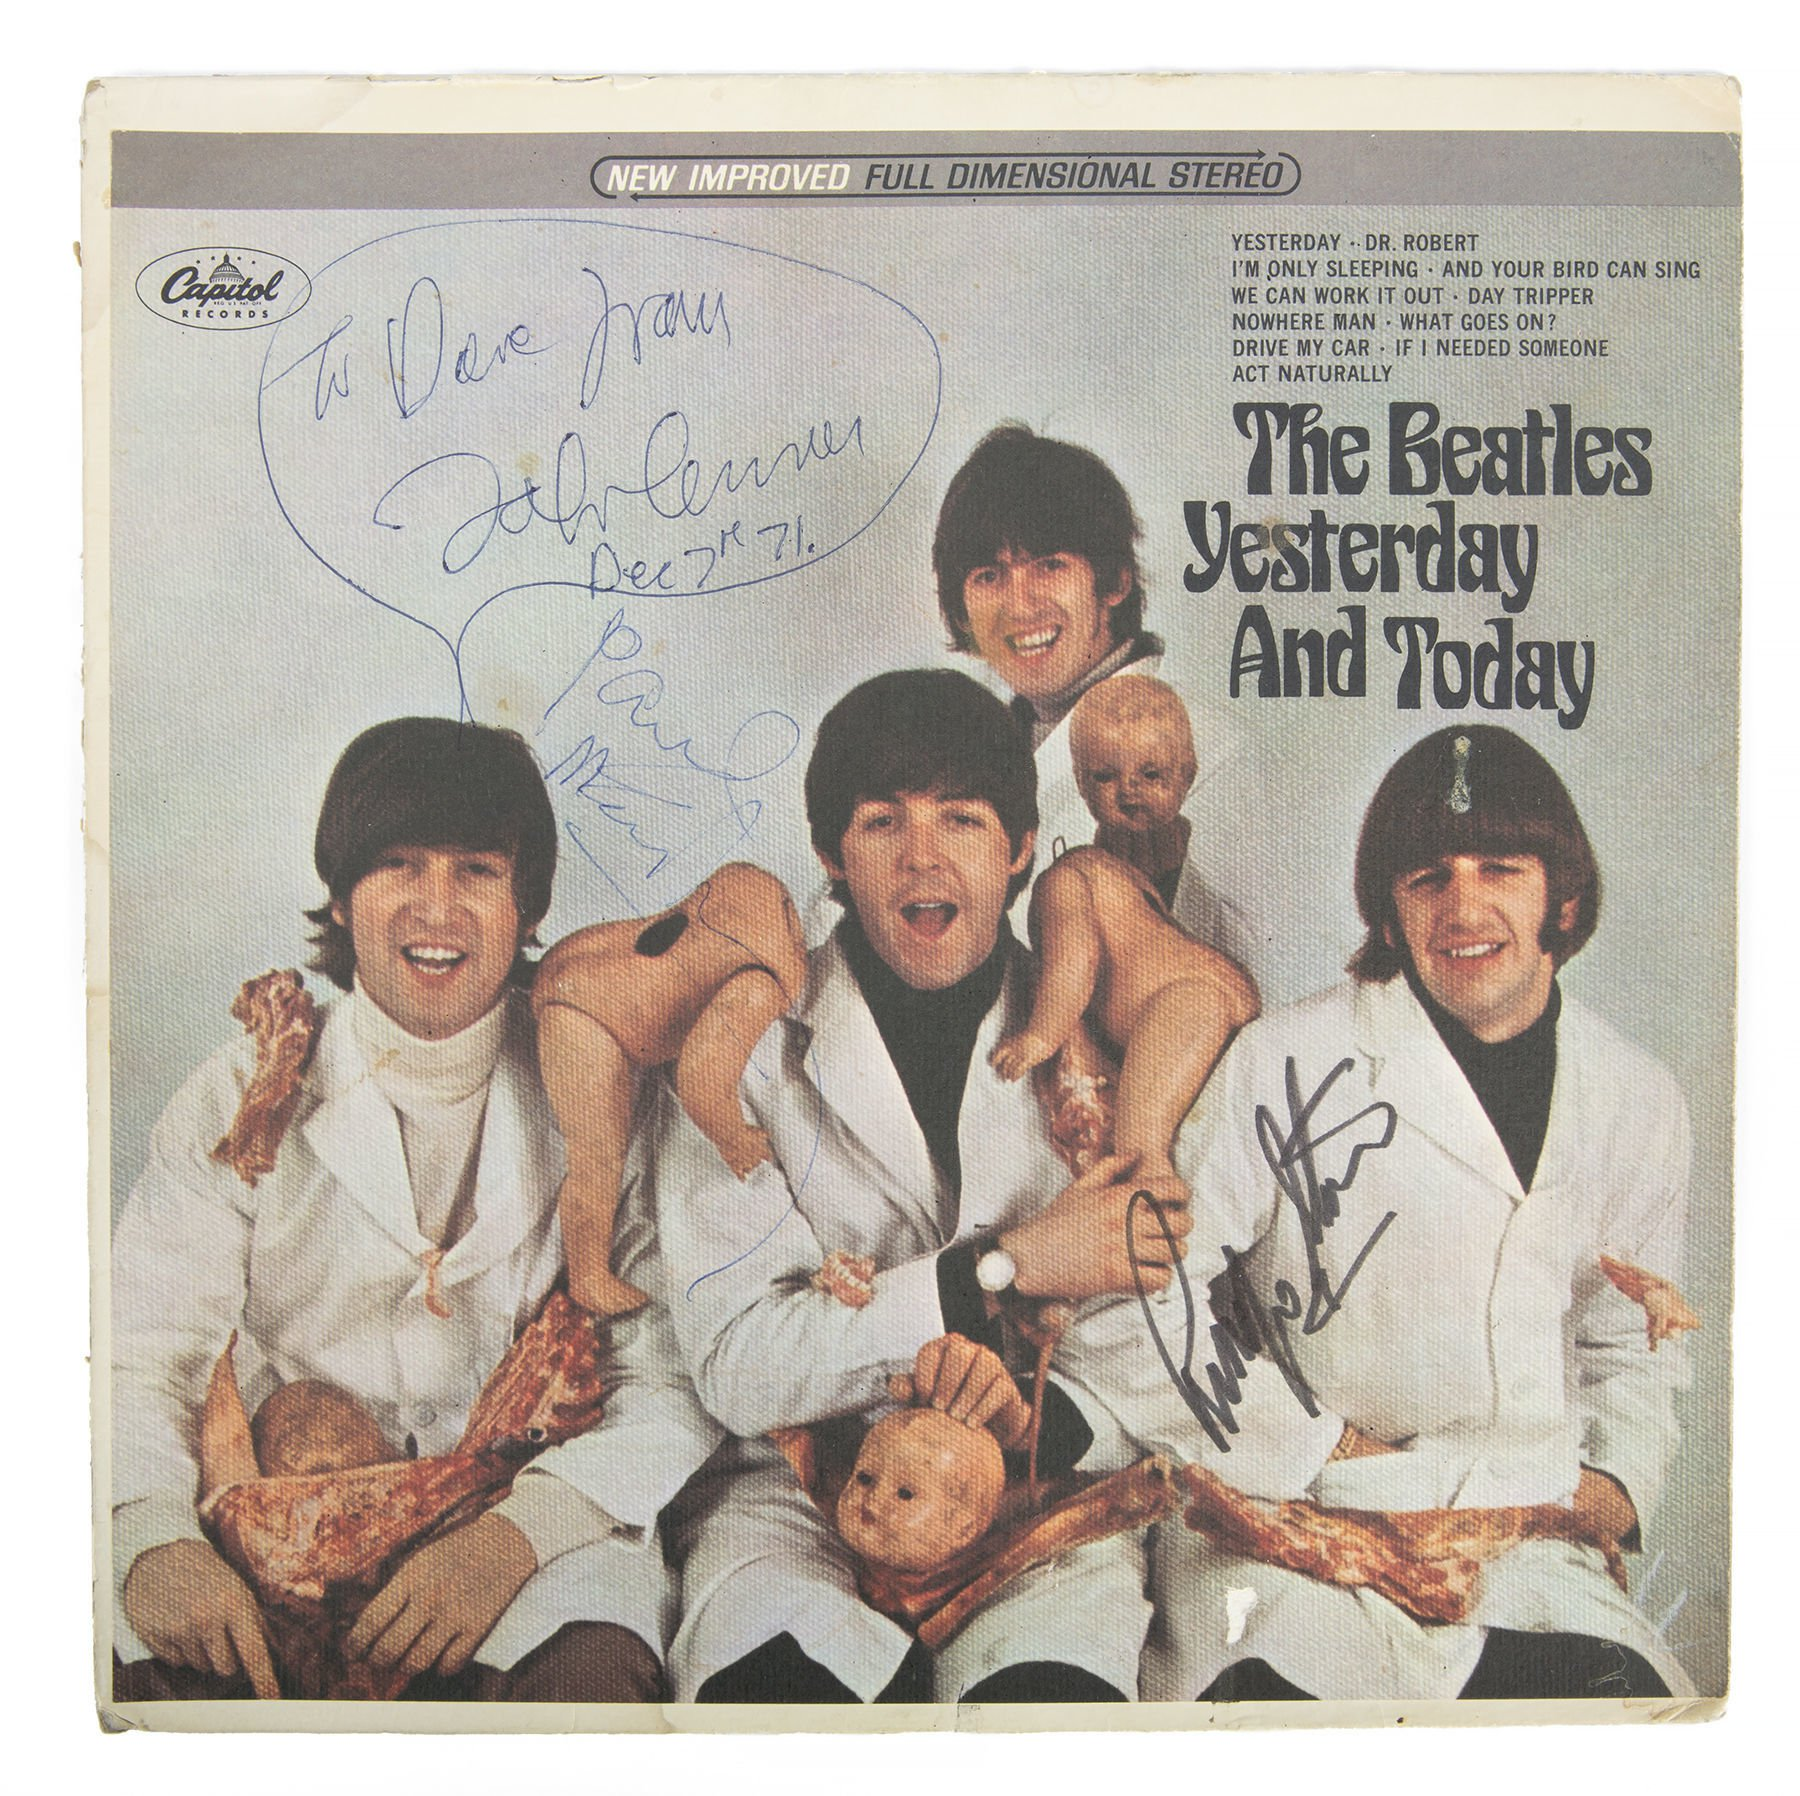 Rare Beatles record with decapitated baby dolls cover expected to fetch £136k at auction